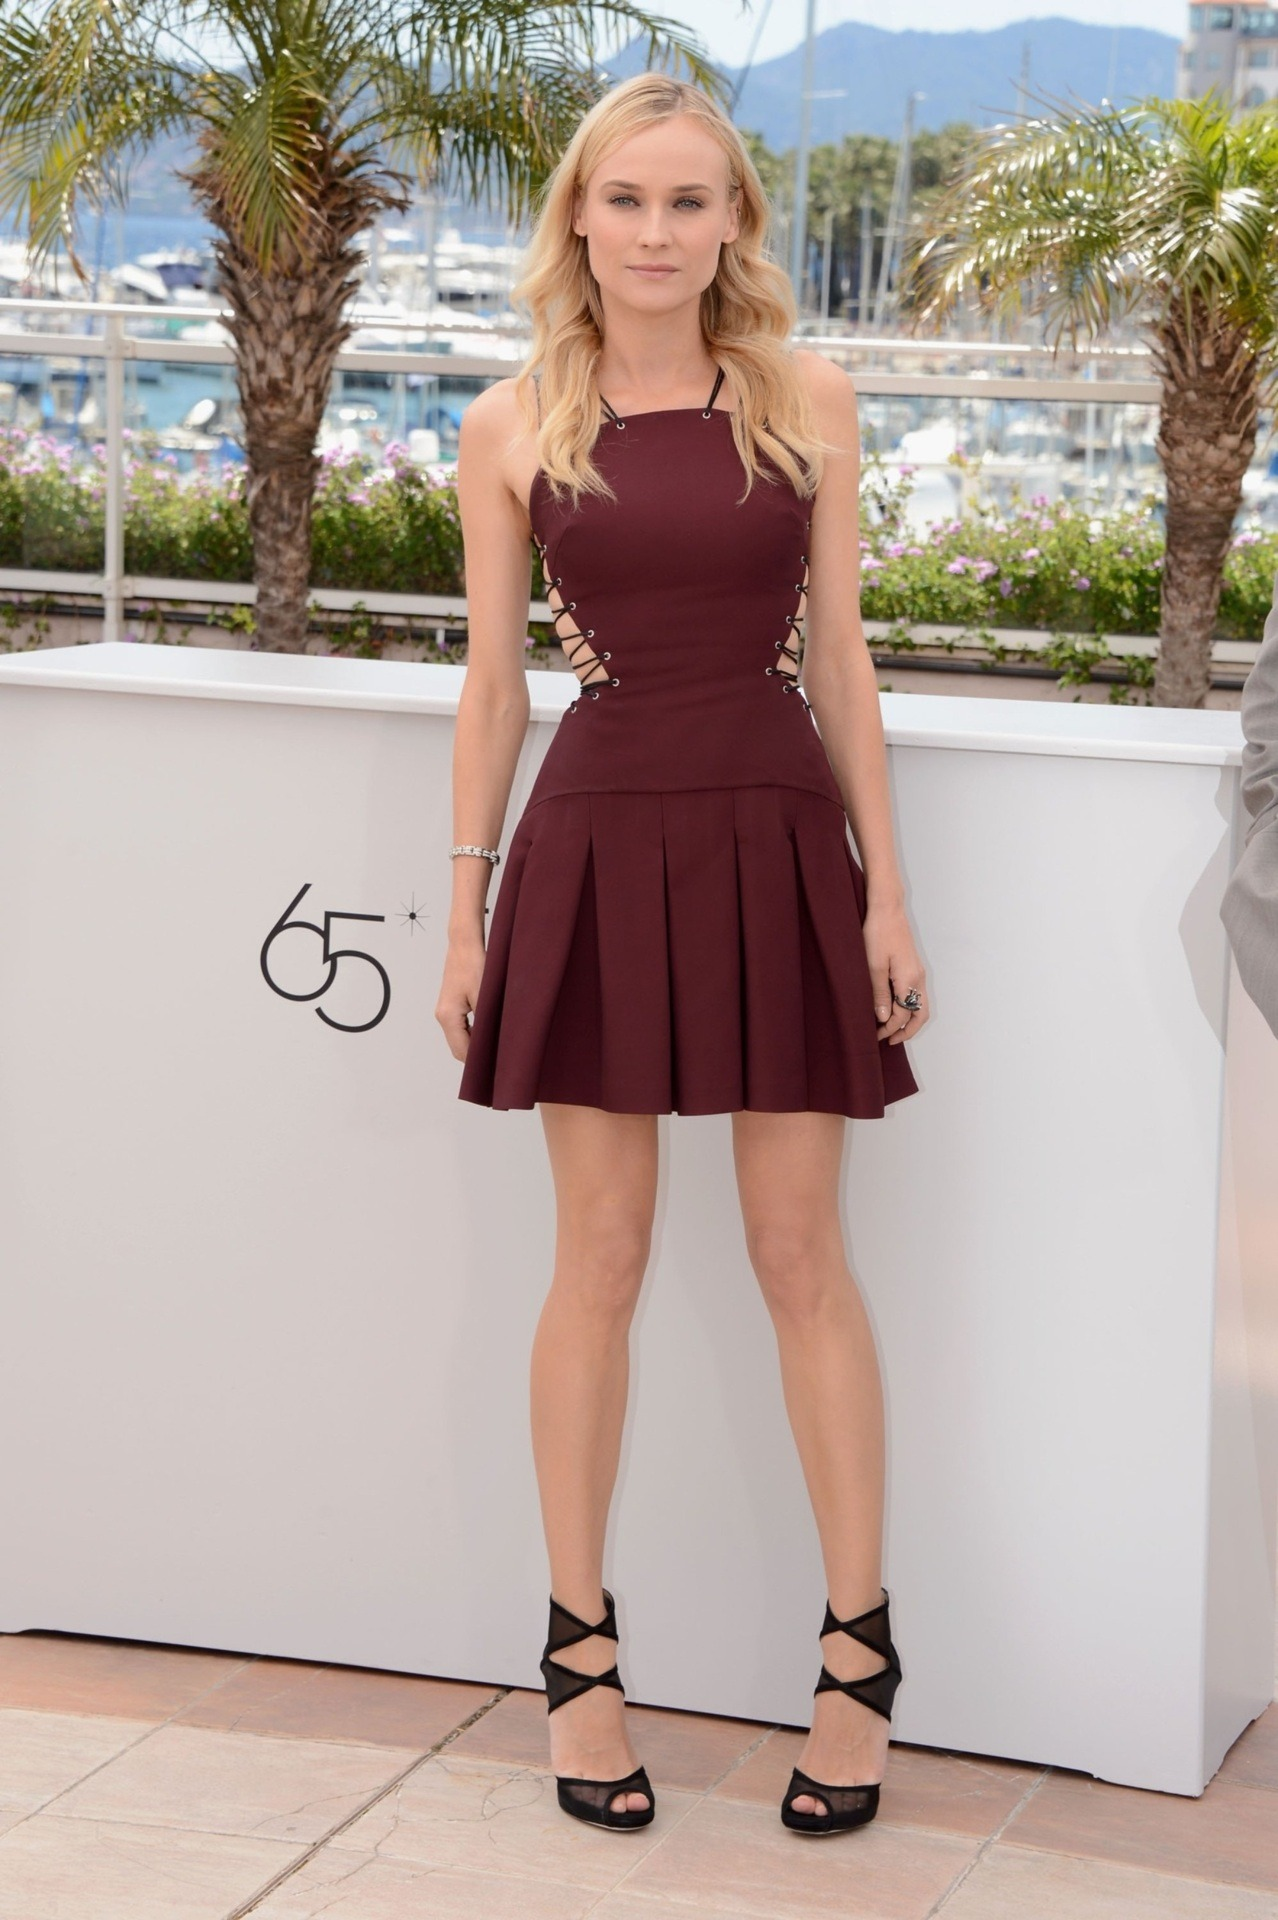 suicideblonde:  Diane Kruger in a Versus mini dress and Jimmy Choo strappy sandals at the Cannes Juror Photocall, May 16th  This dress!